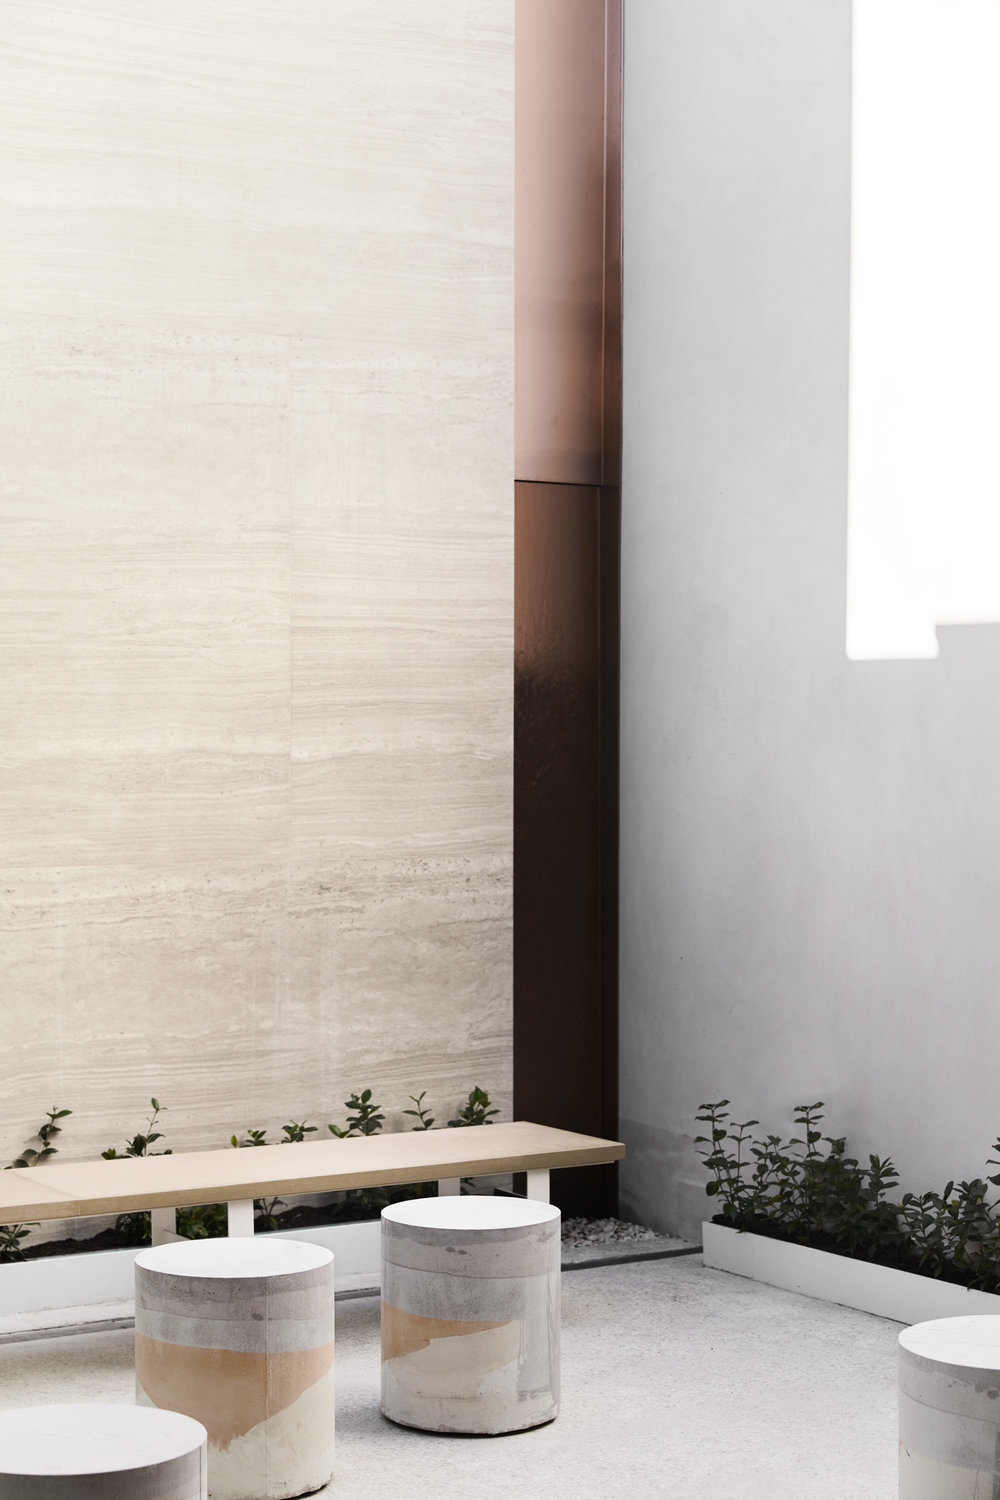 Willow-Urban-Retreat-in-Melbourne-by-Meme-Yellowtrace-24.jpg